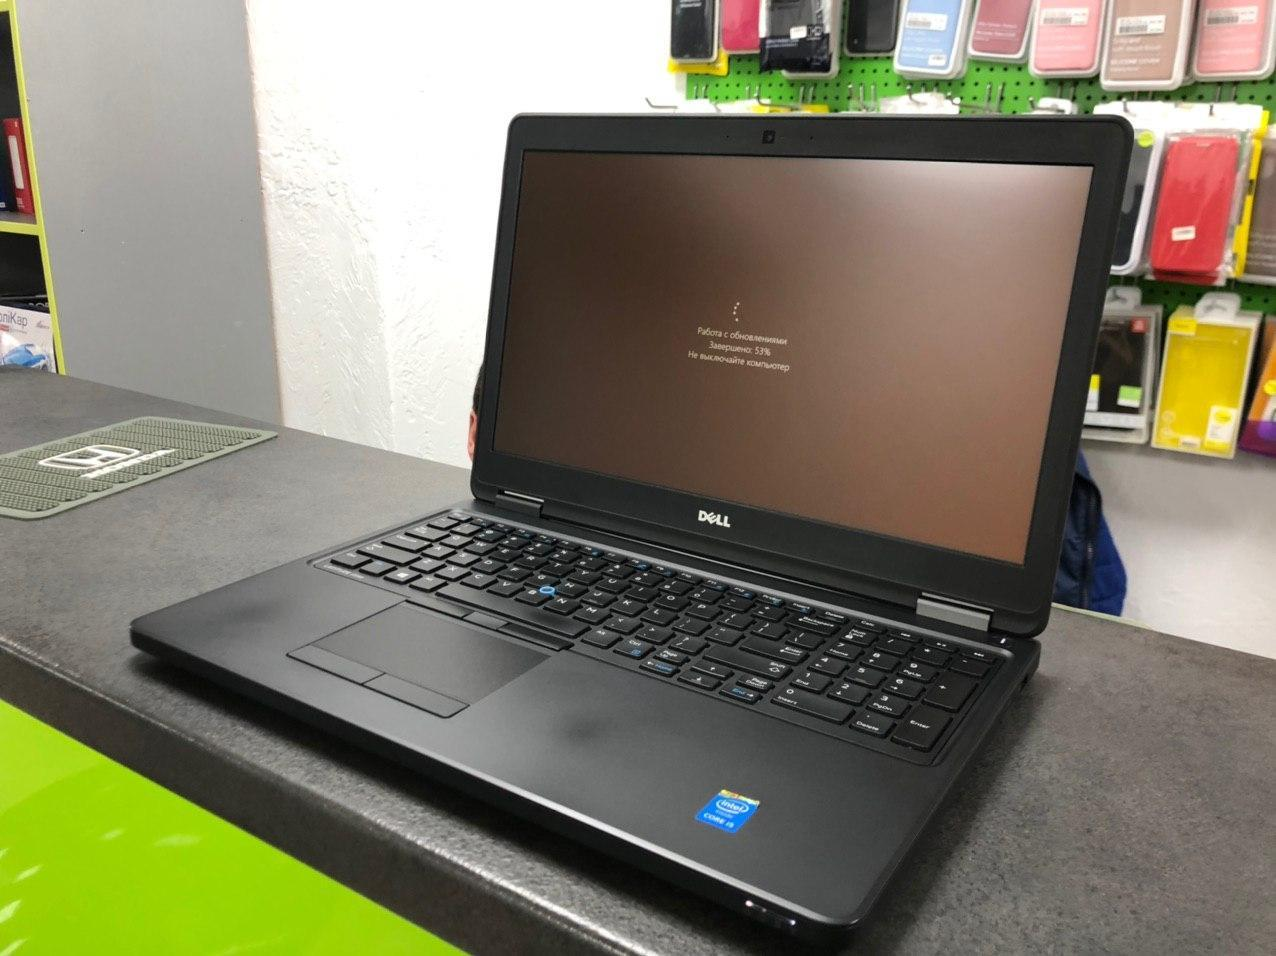 Dell Latitude E5550 | FHD IPS 15.6' | i5 -5300U | 8Gb | SSD 120Gb